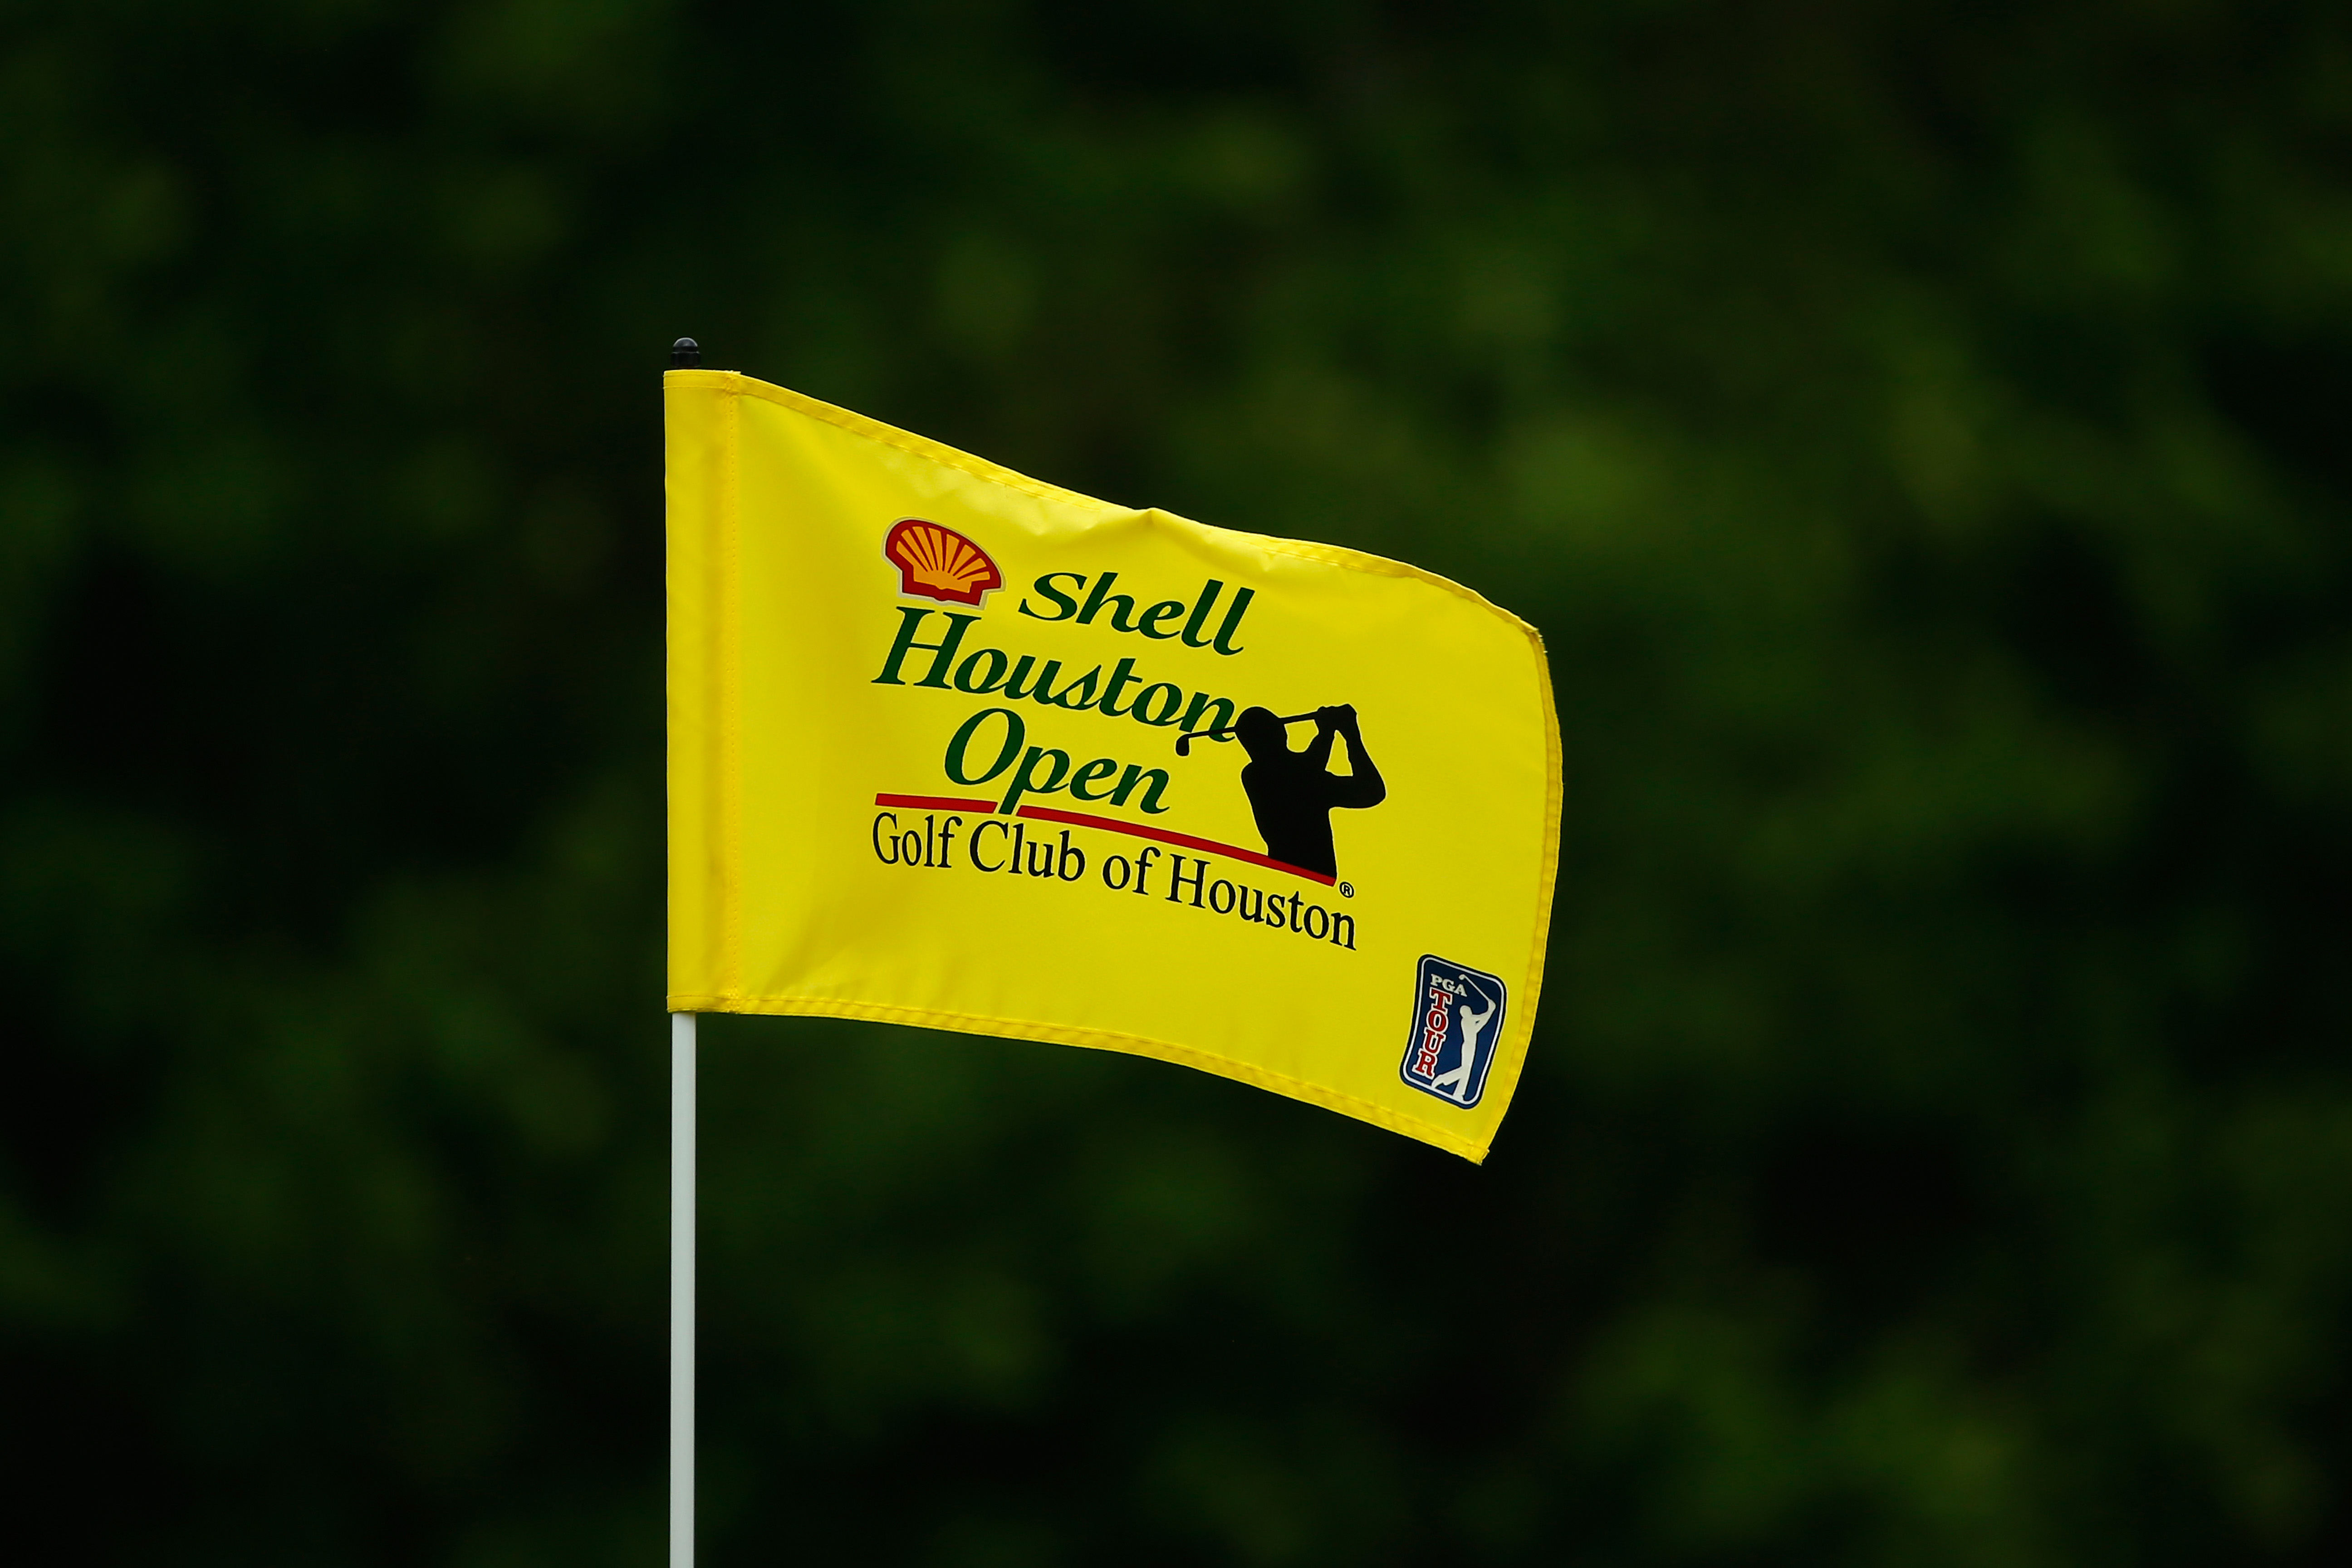 shell houston open grand pro am canceled for wednesday